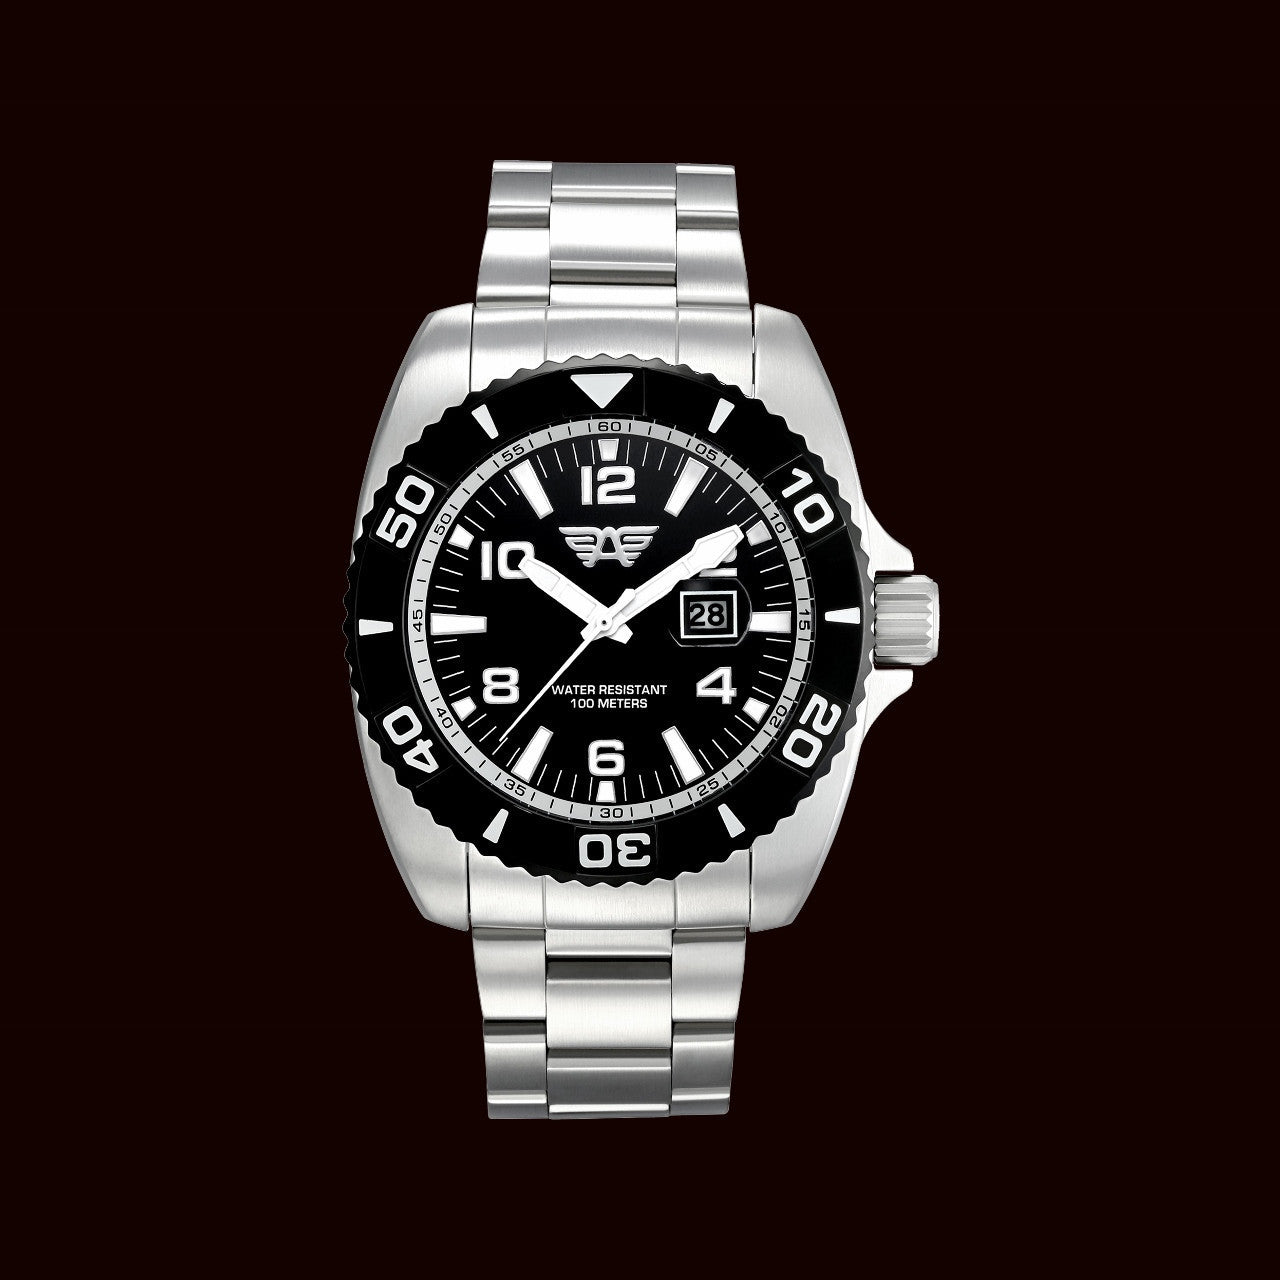 Aquarius Watches ADZ-2010-01